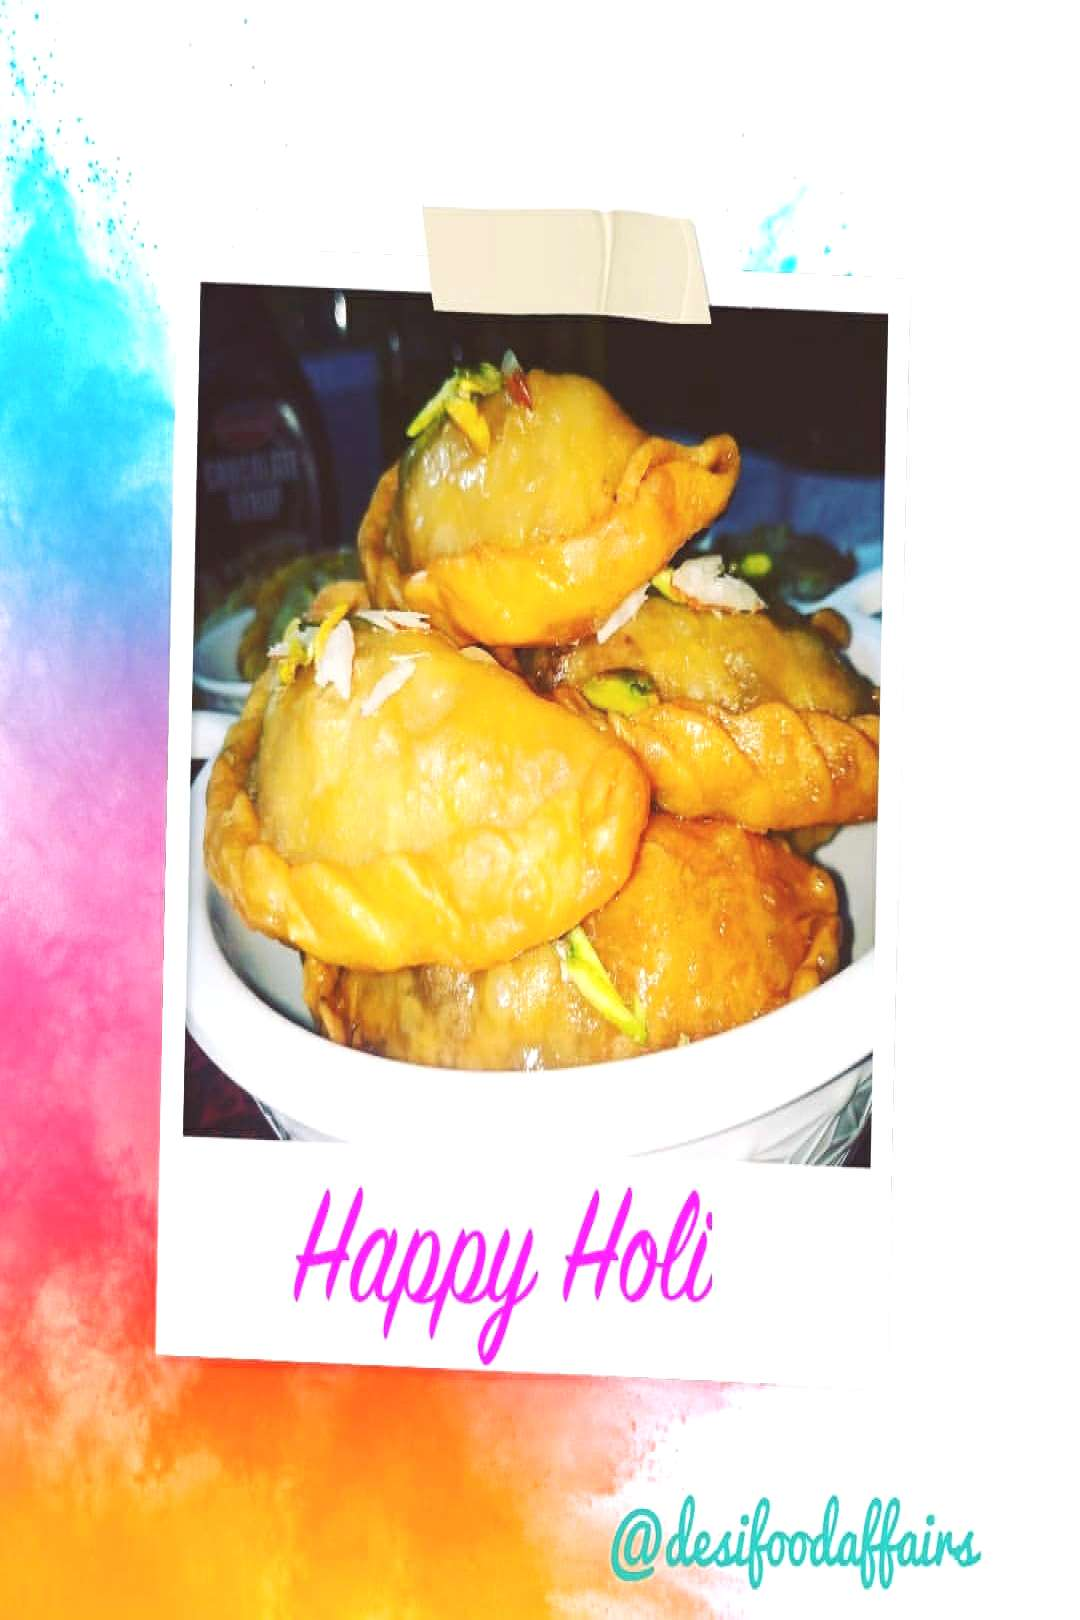 food, possible text that says 'Happy Holi '